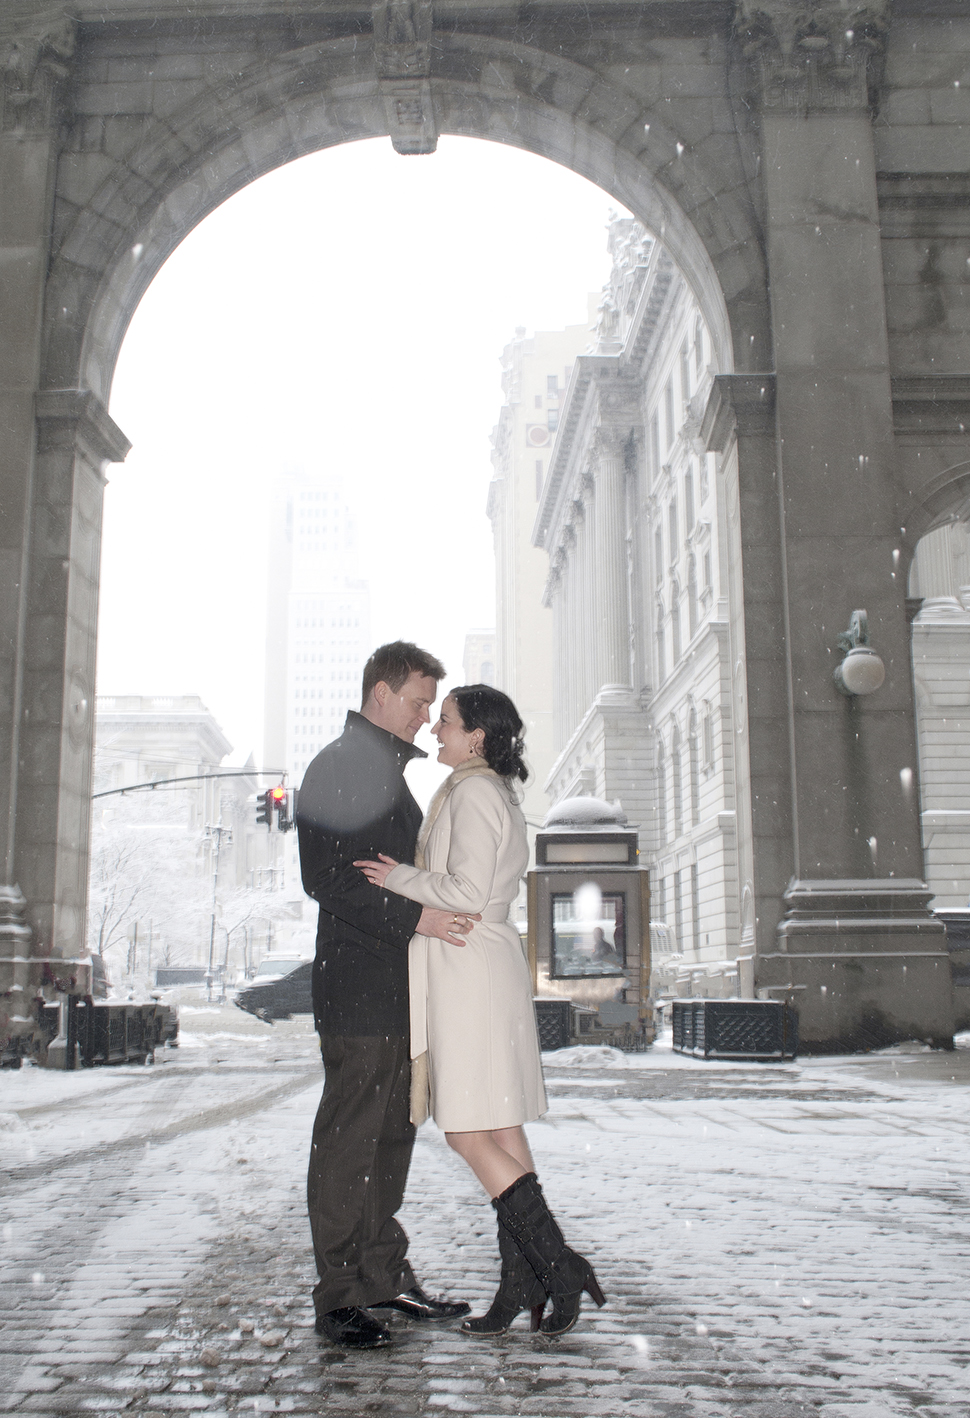 City Hall Couple elopes from London for winter wedding